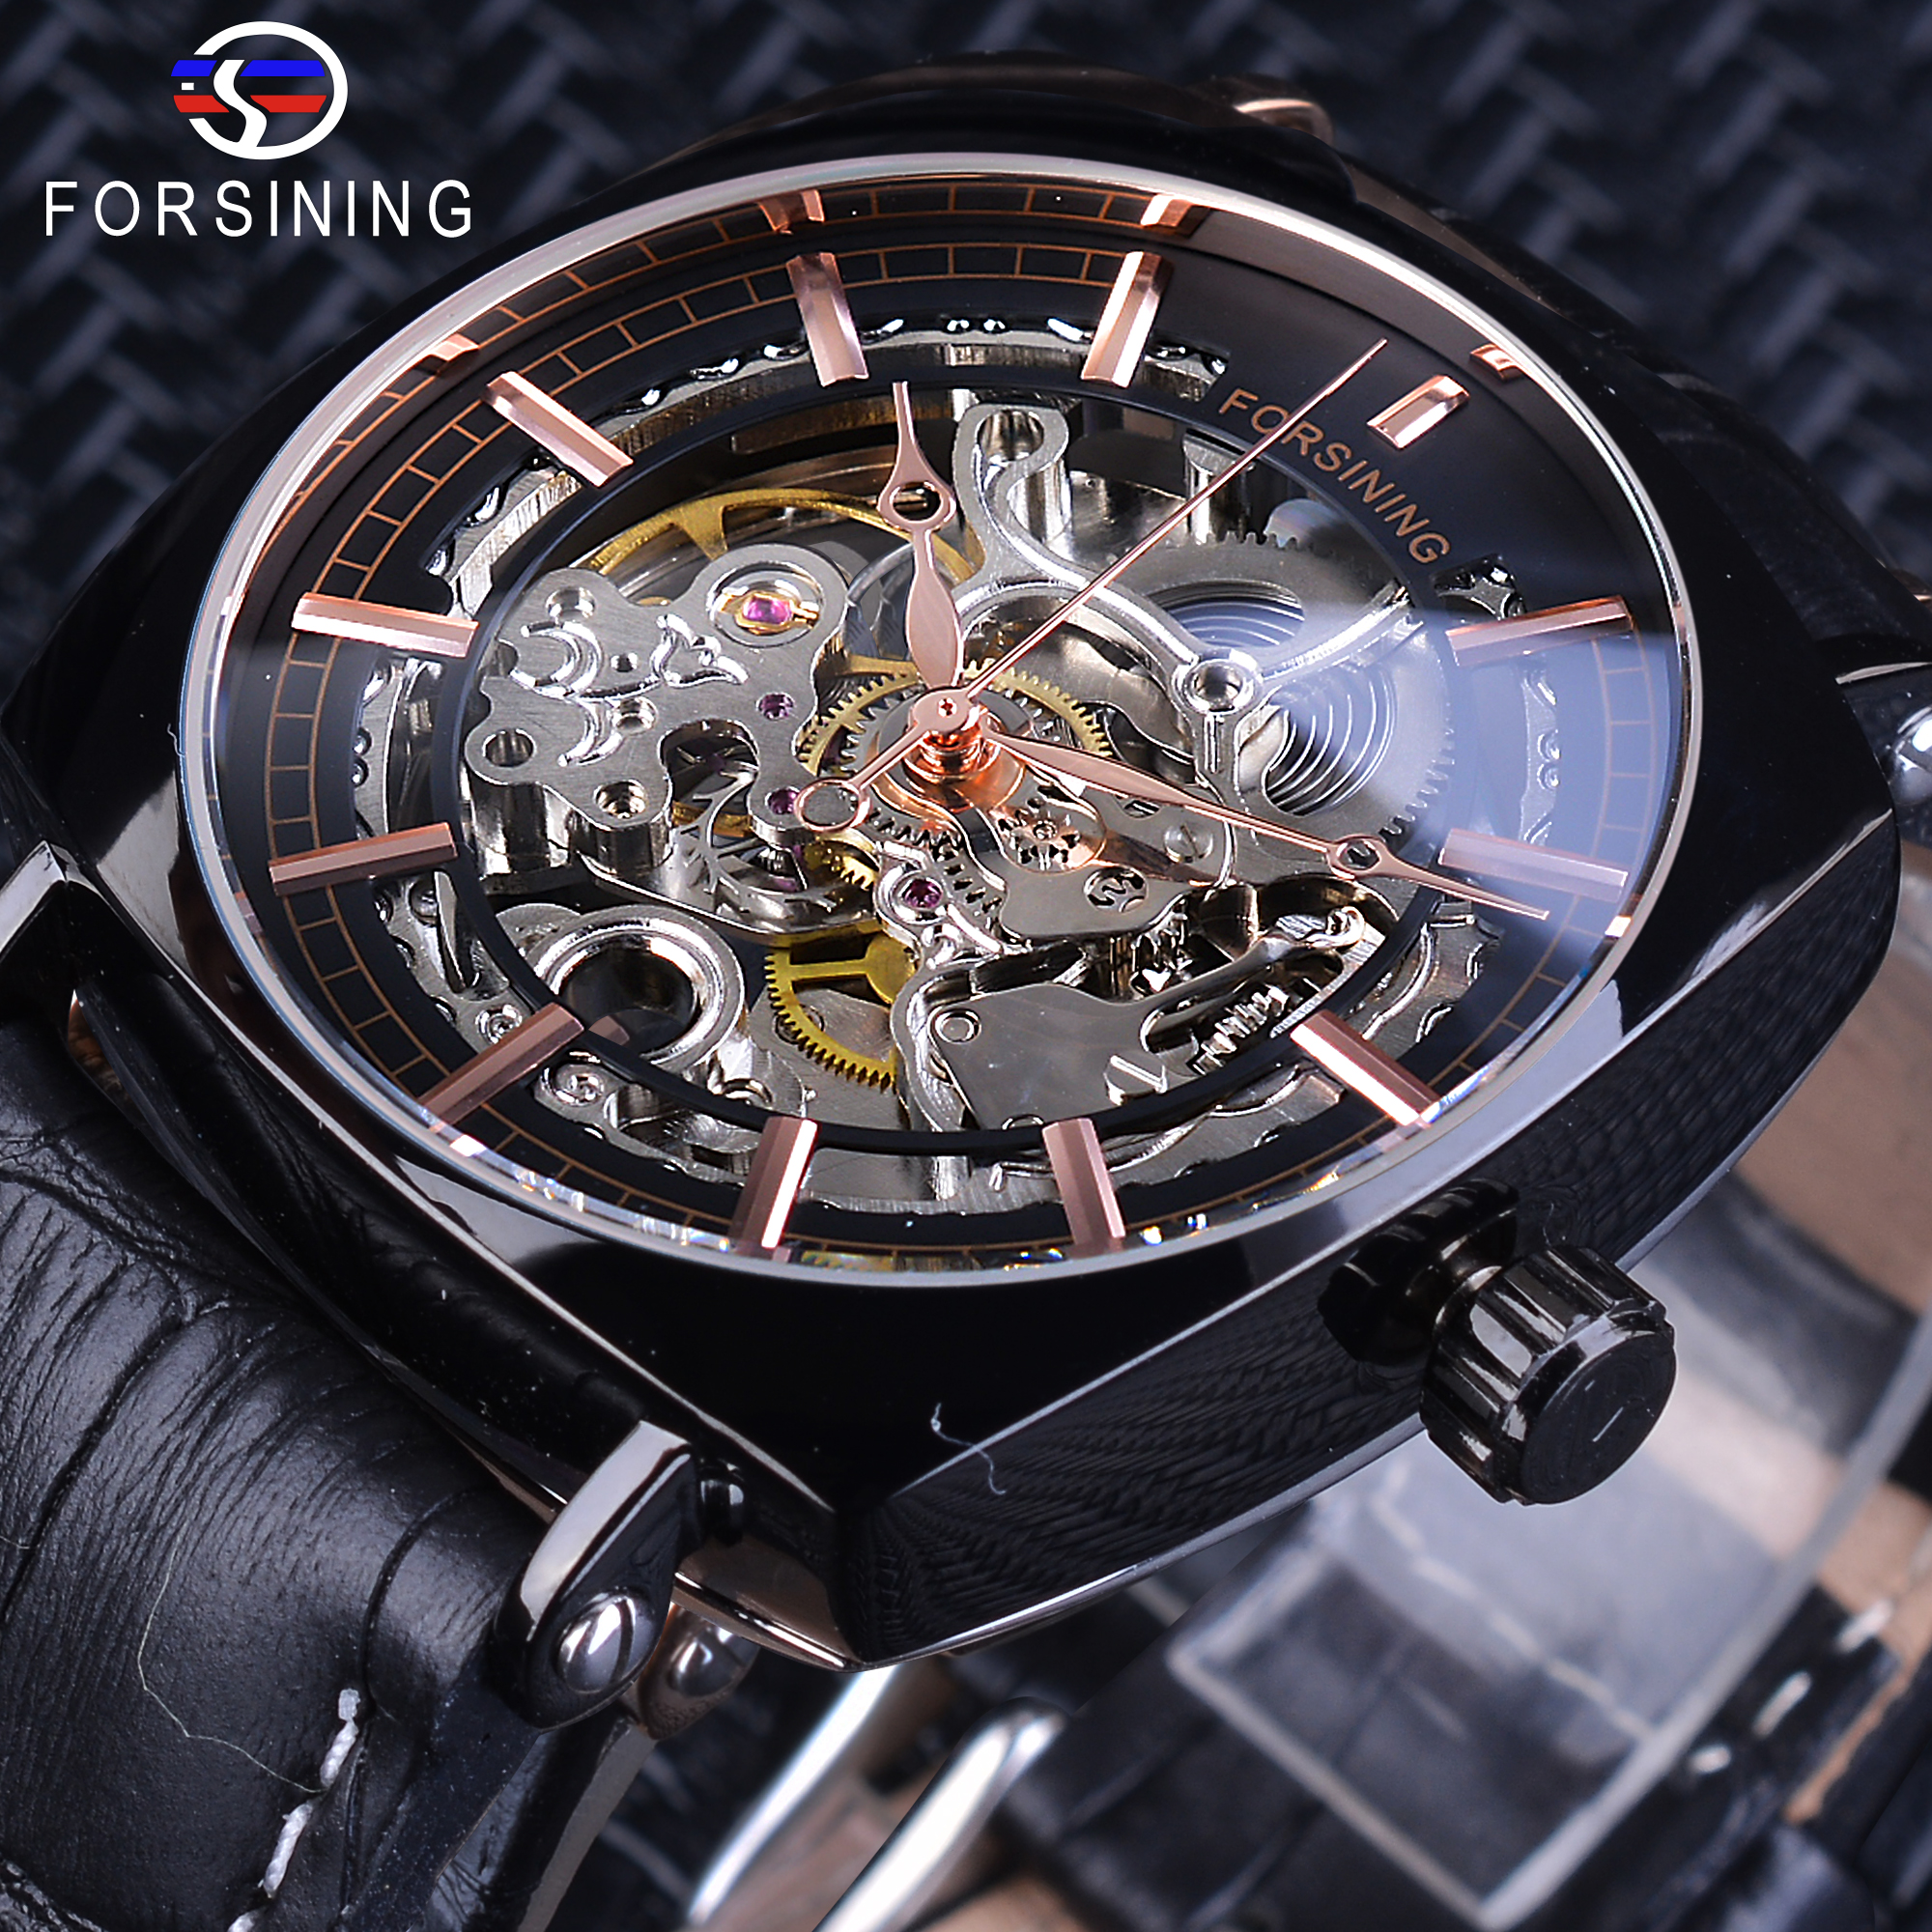 Forsining Rose Golden Square Mechanical Watches Men Automatic Clock Transparent Movement Black Genuine Leather Belt Reloj Hombre